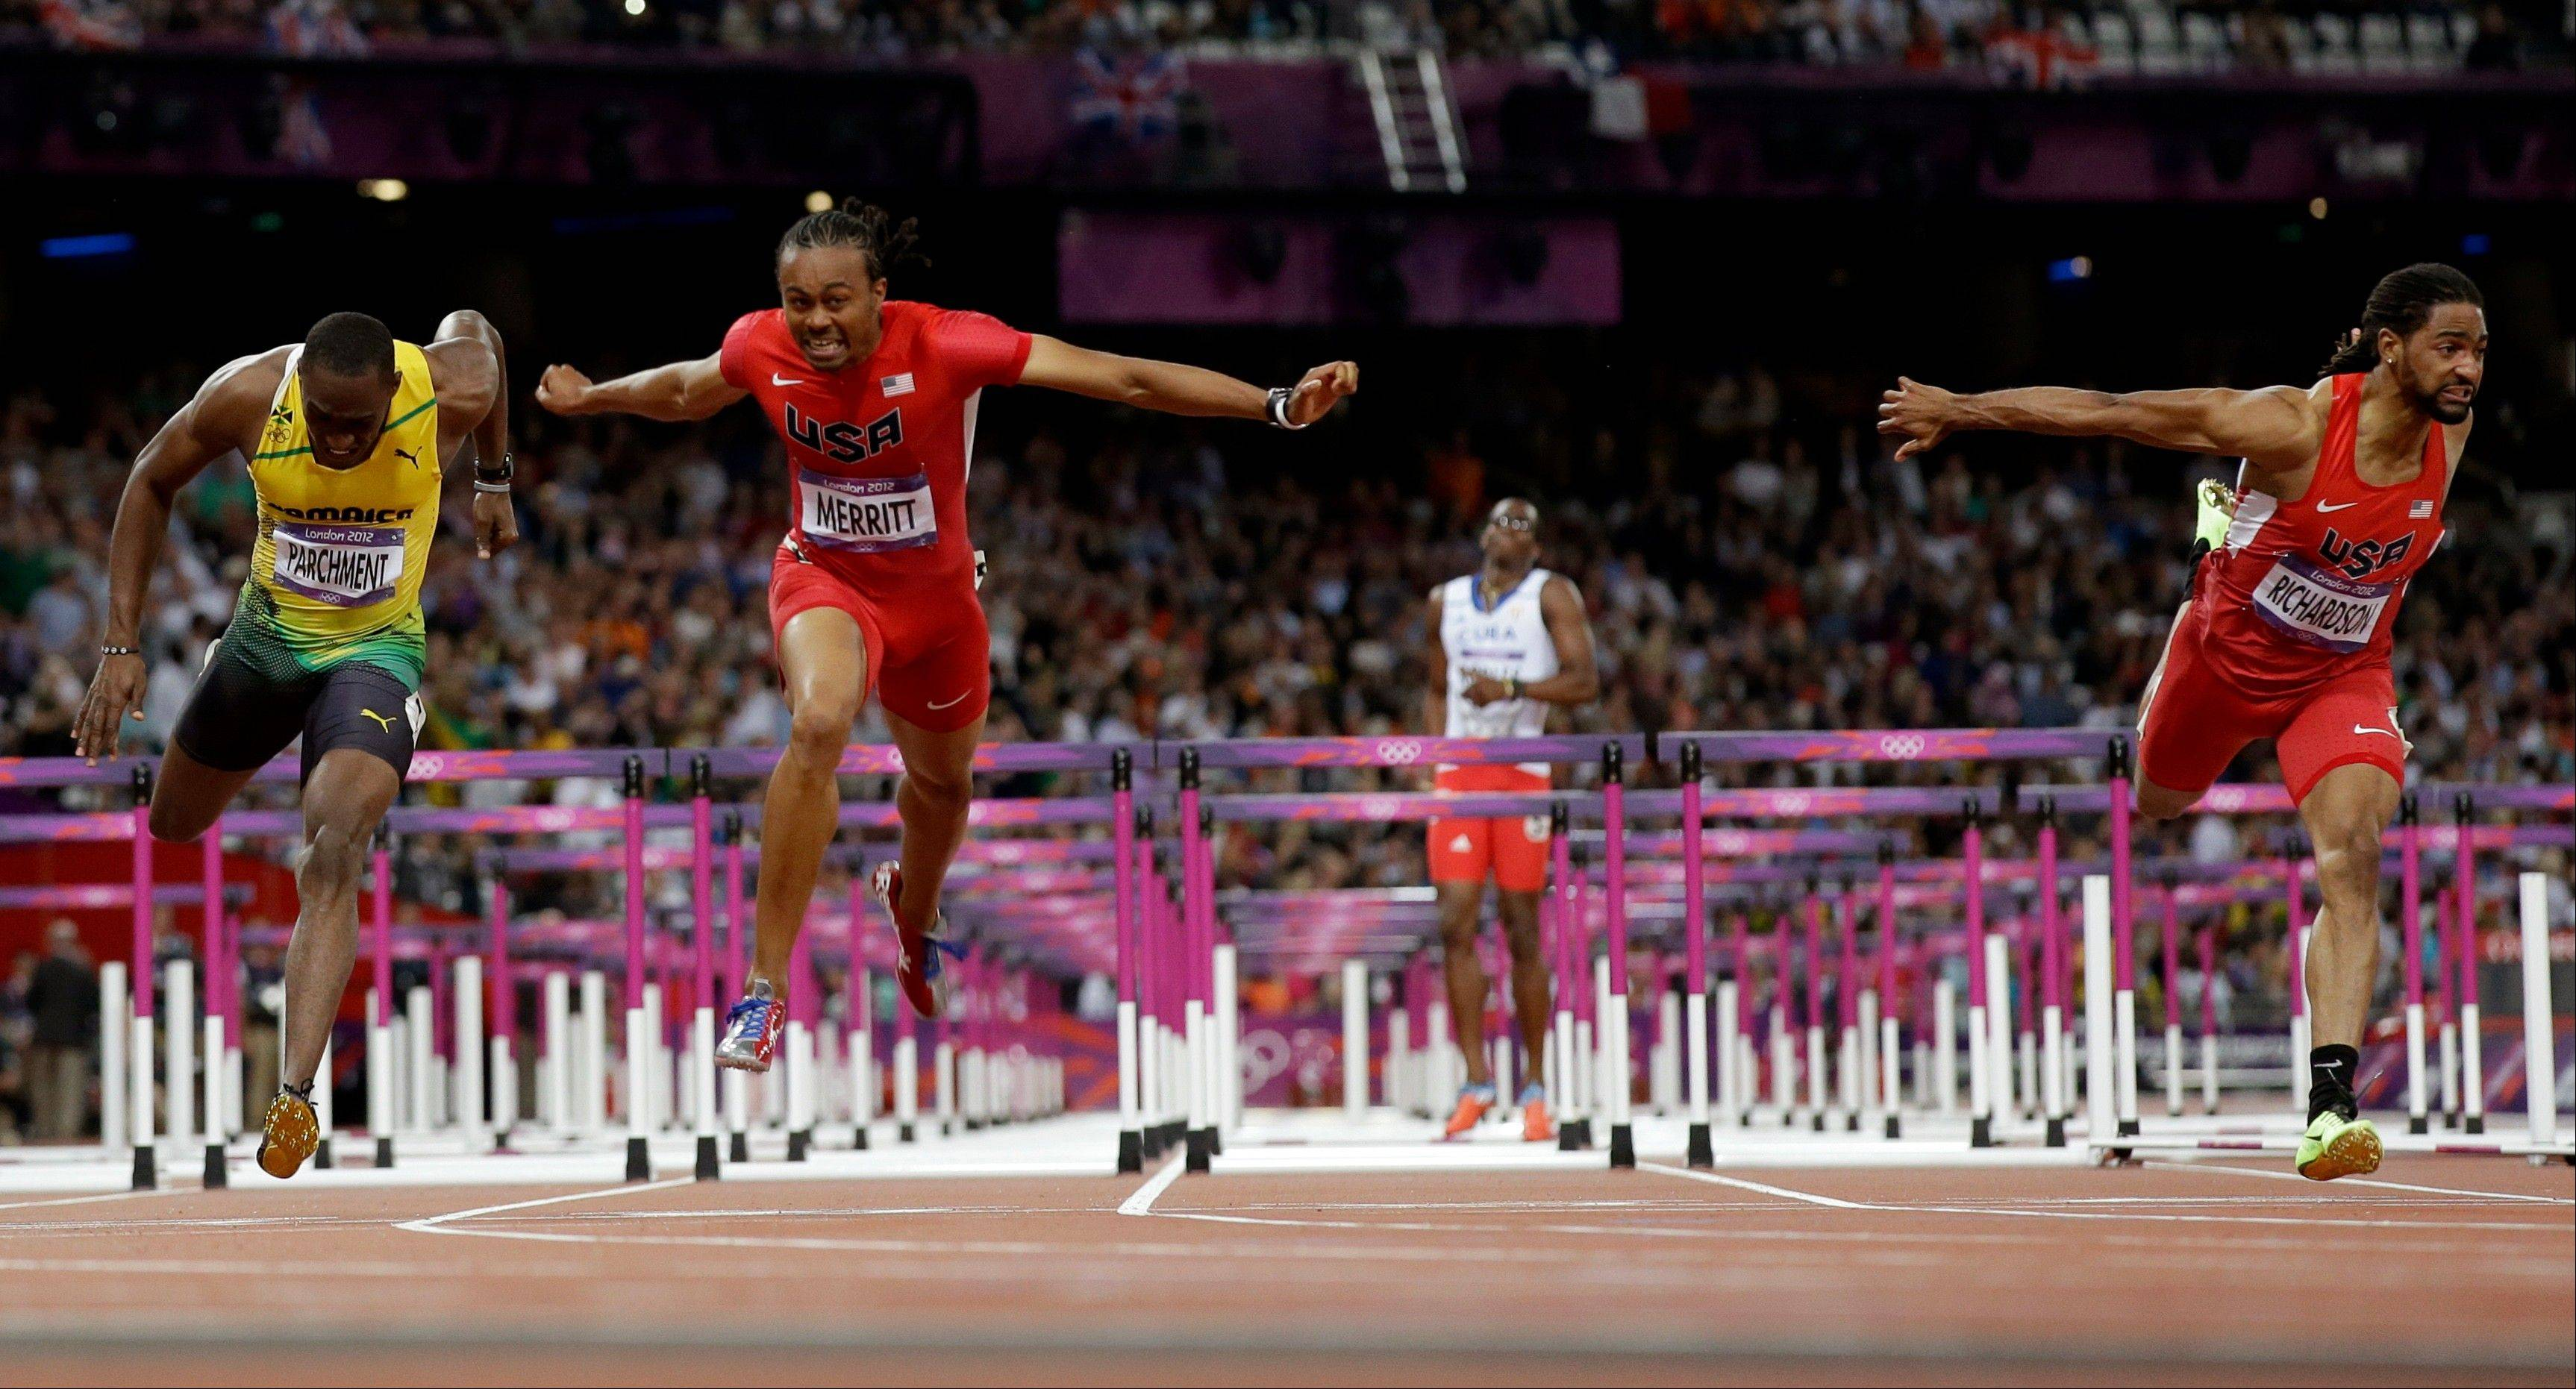 United States' Aries Merritt, second from left, crosses the finish line ahead of United States' Jason Richardson, right, and Jamaica's Hansle Parchment, left, to win gold in the men's 110-meter hurdles final